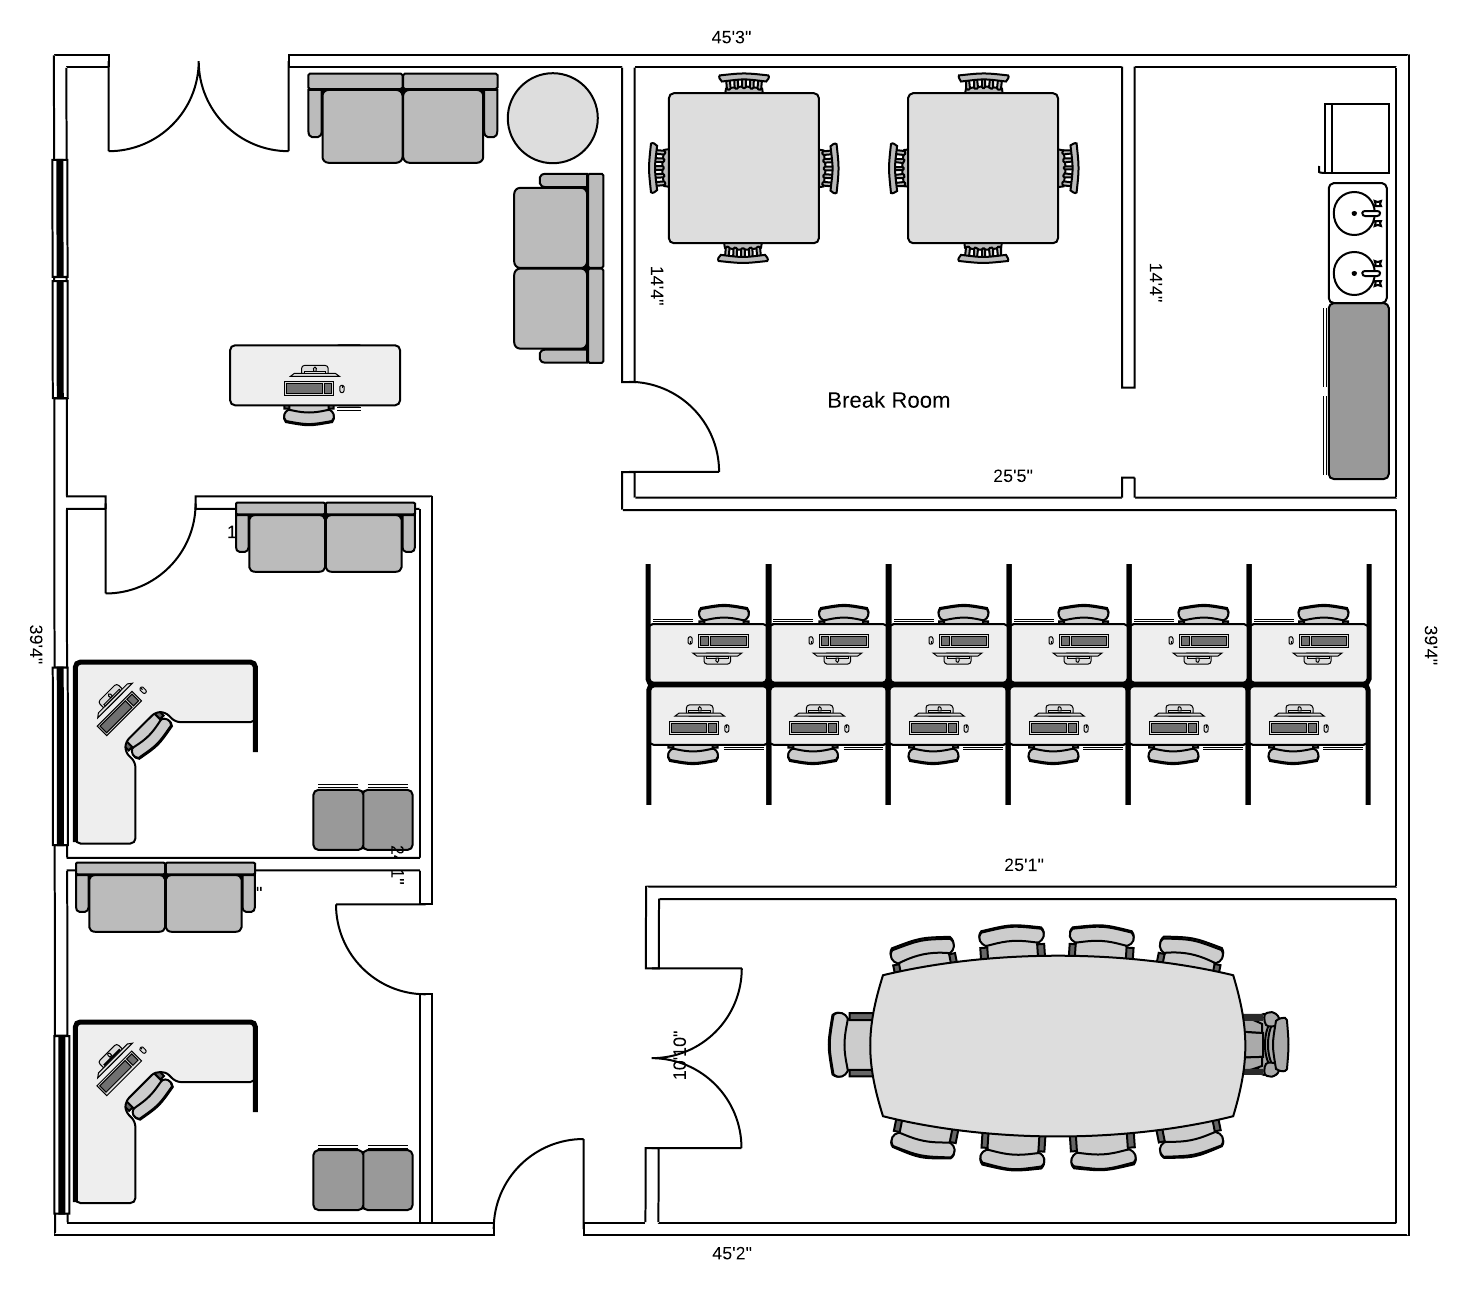 hight resolution of office floor plan